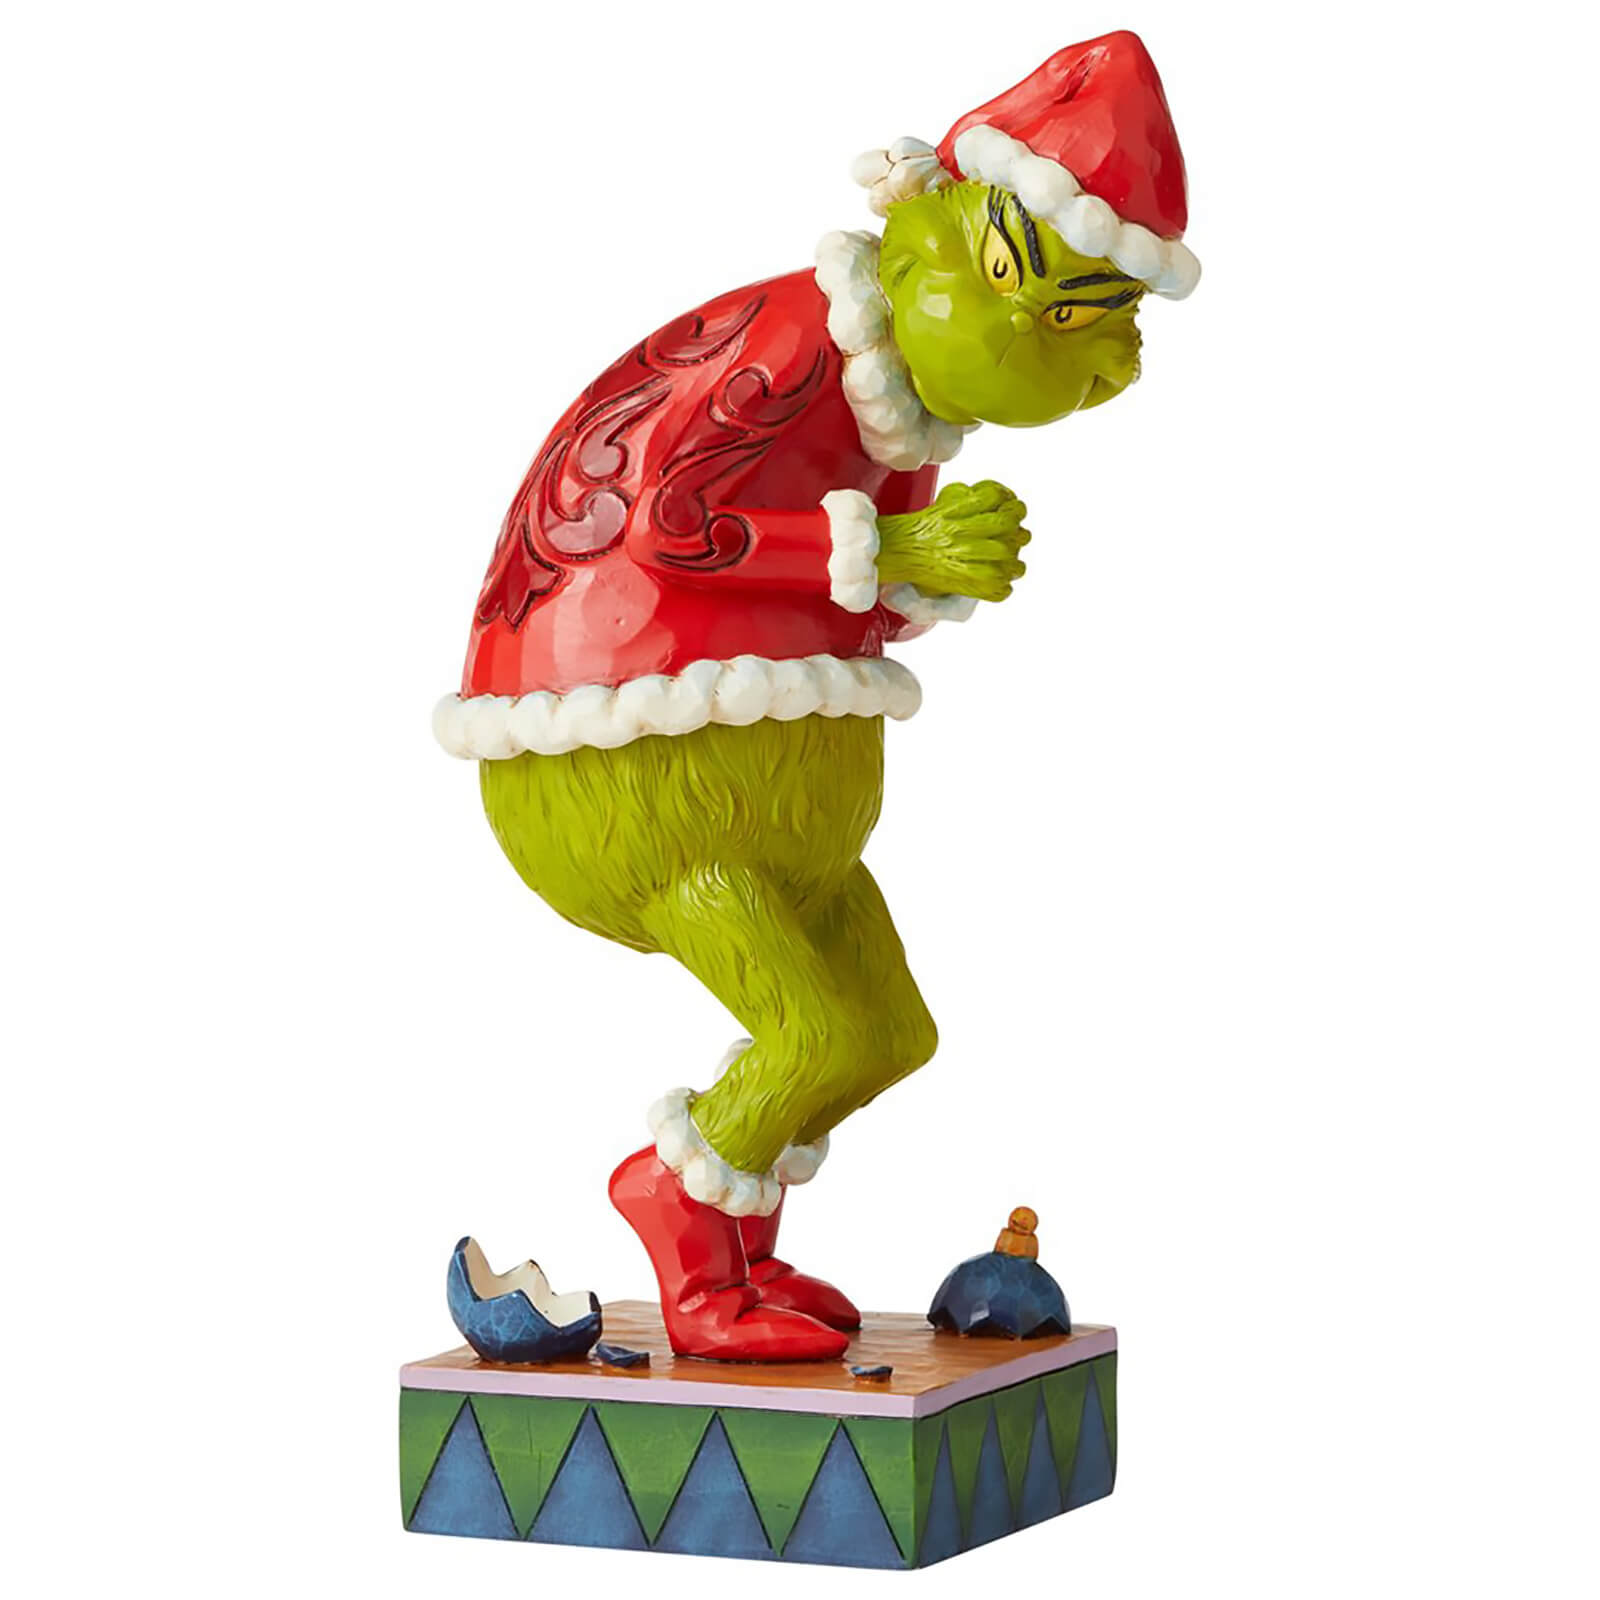 Image of The Grinch By Jim Shore Sneaky Grinch Fig